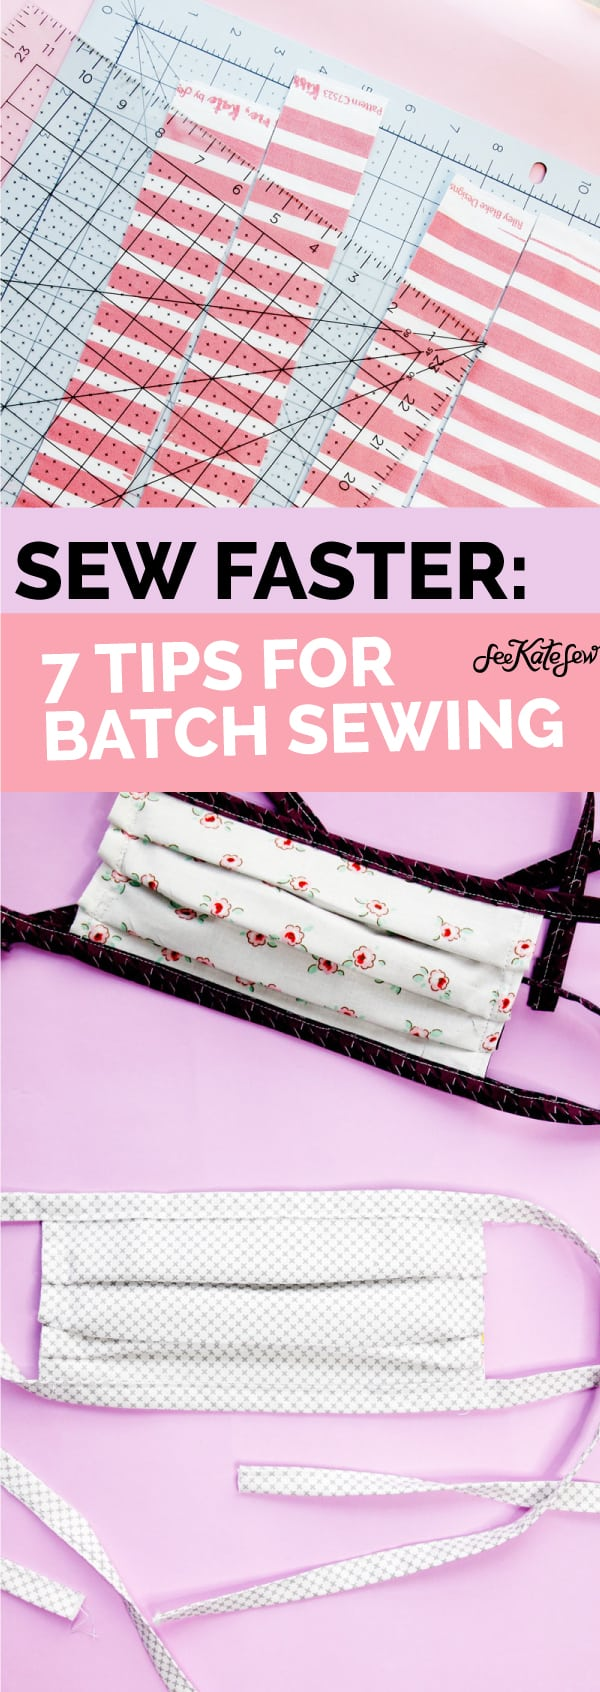 Sew Faster for Mass Producing